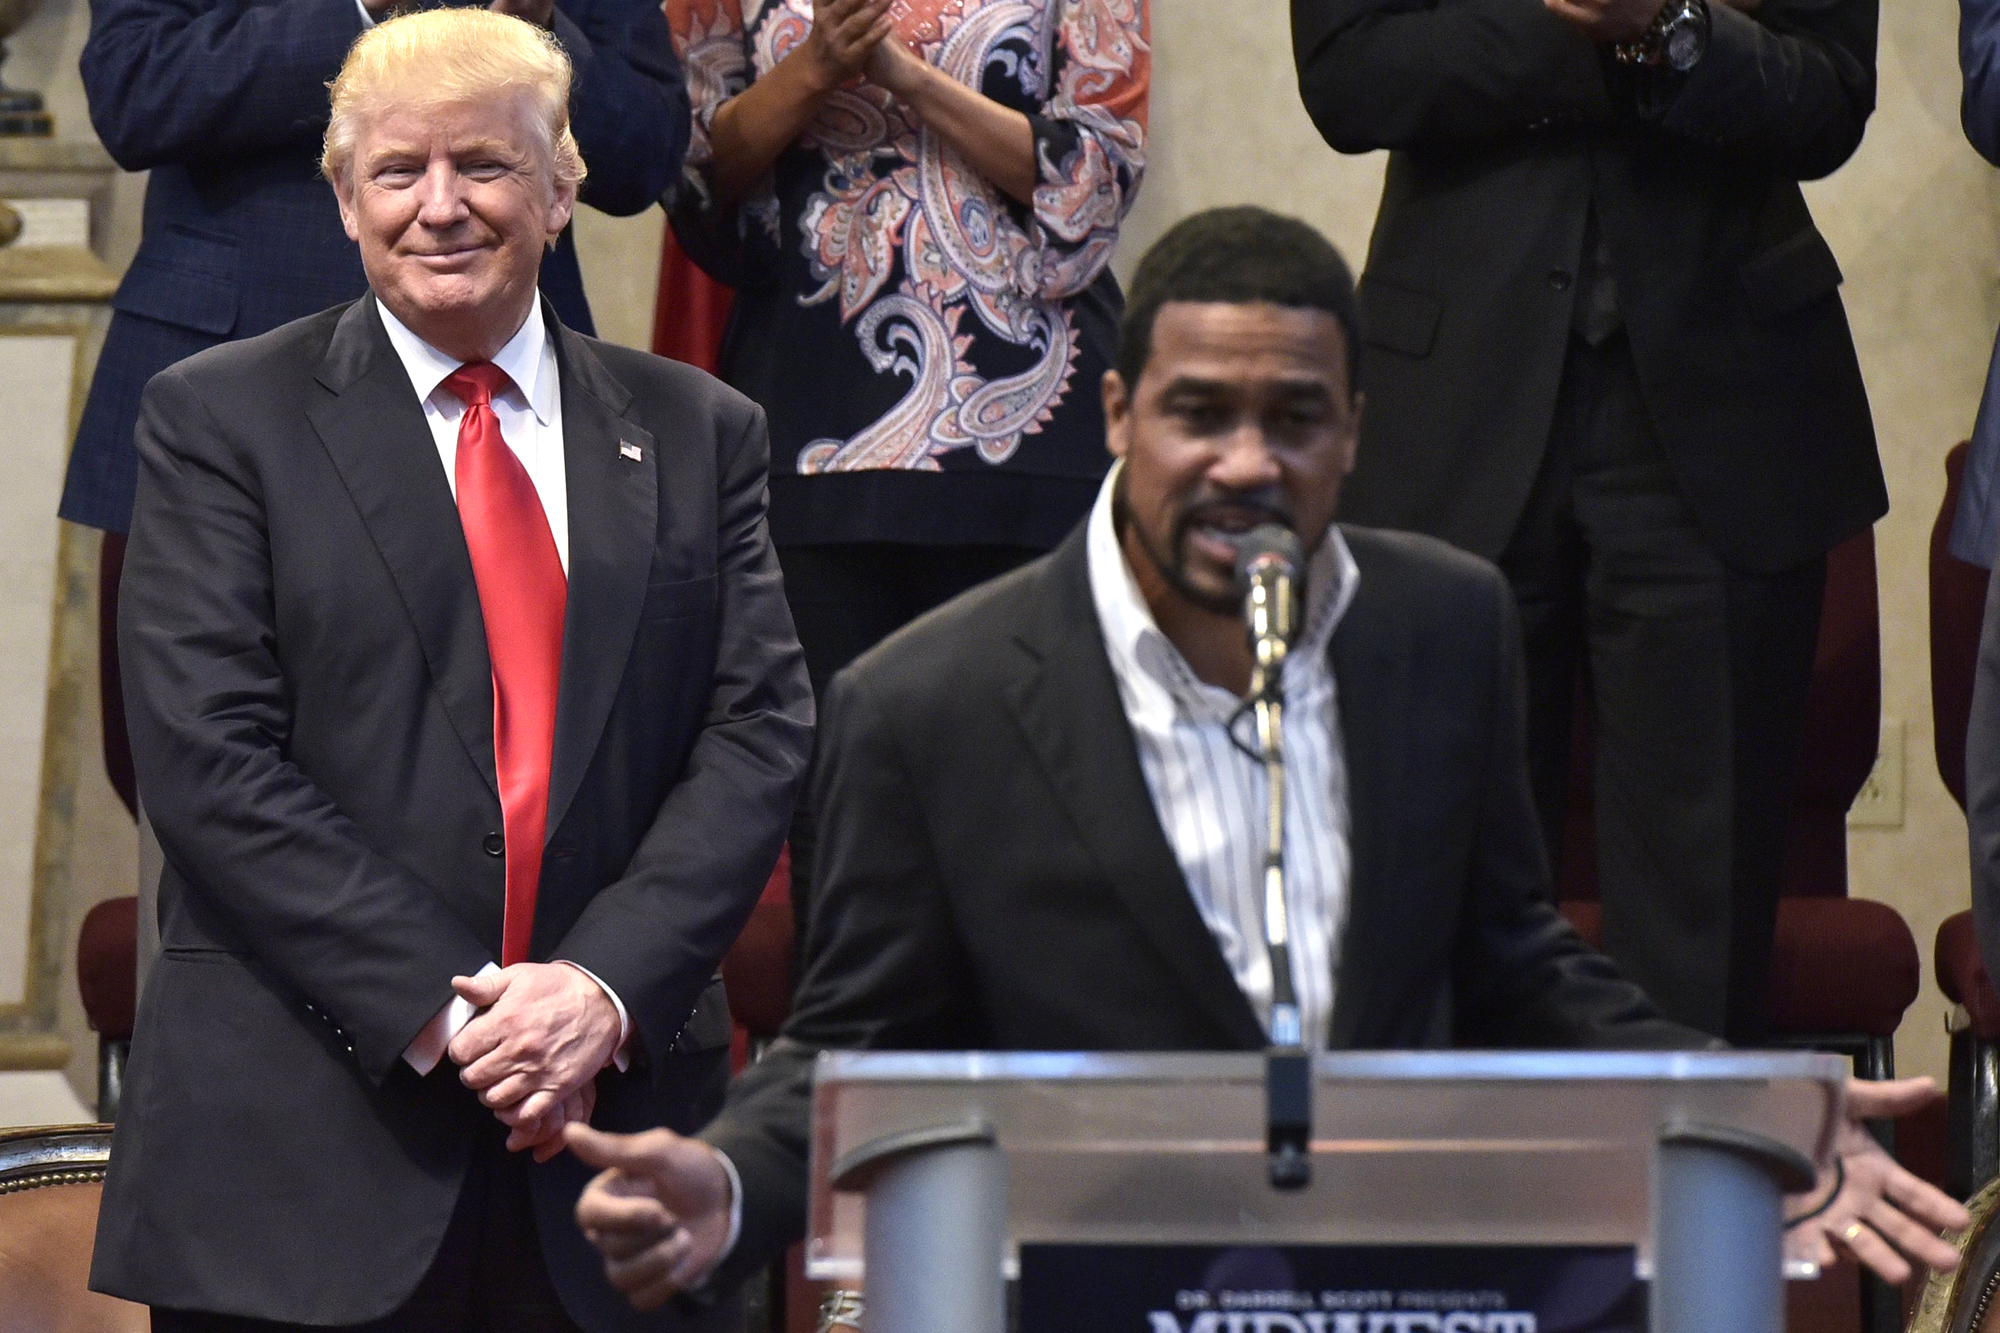 Republican presidential nominee Donald Trump (C) stands as pastor Darrell Scott (R) speaks during the Midwest Vision and Values Pastors and Leadership Conference at the New Spirit Revival Center in Cleveland Heights, Ohio on September 21, 2016.